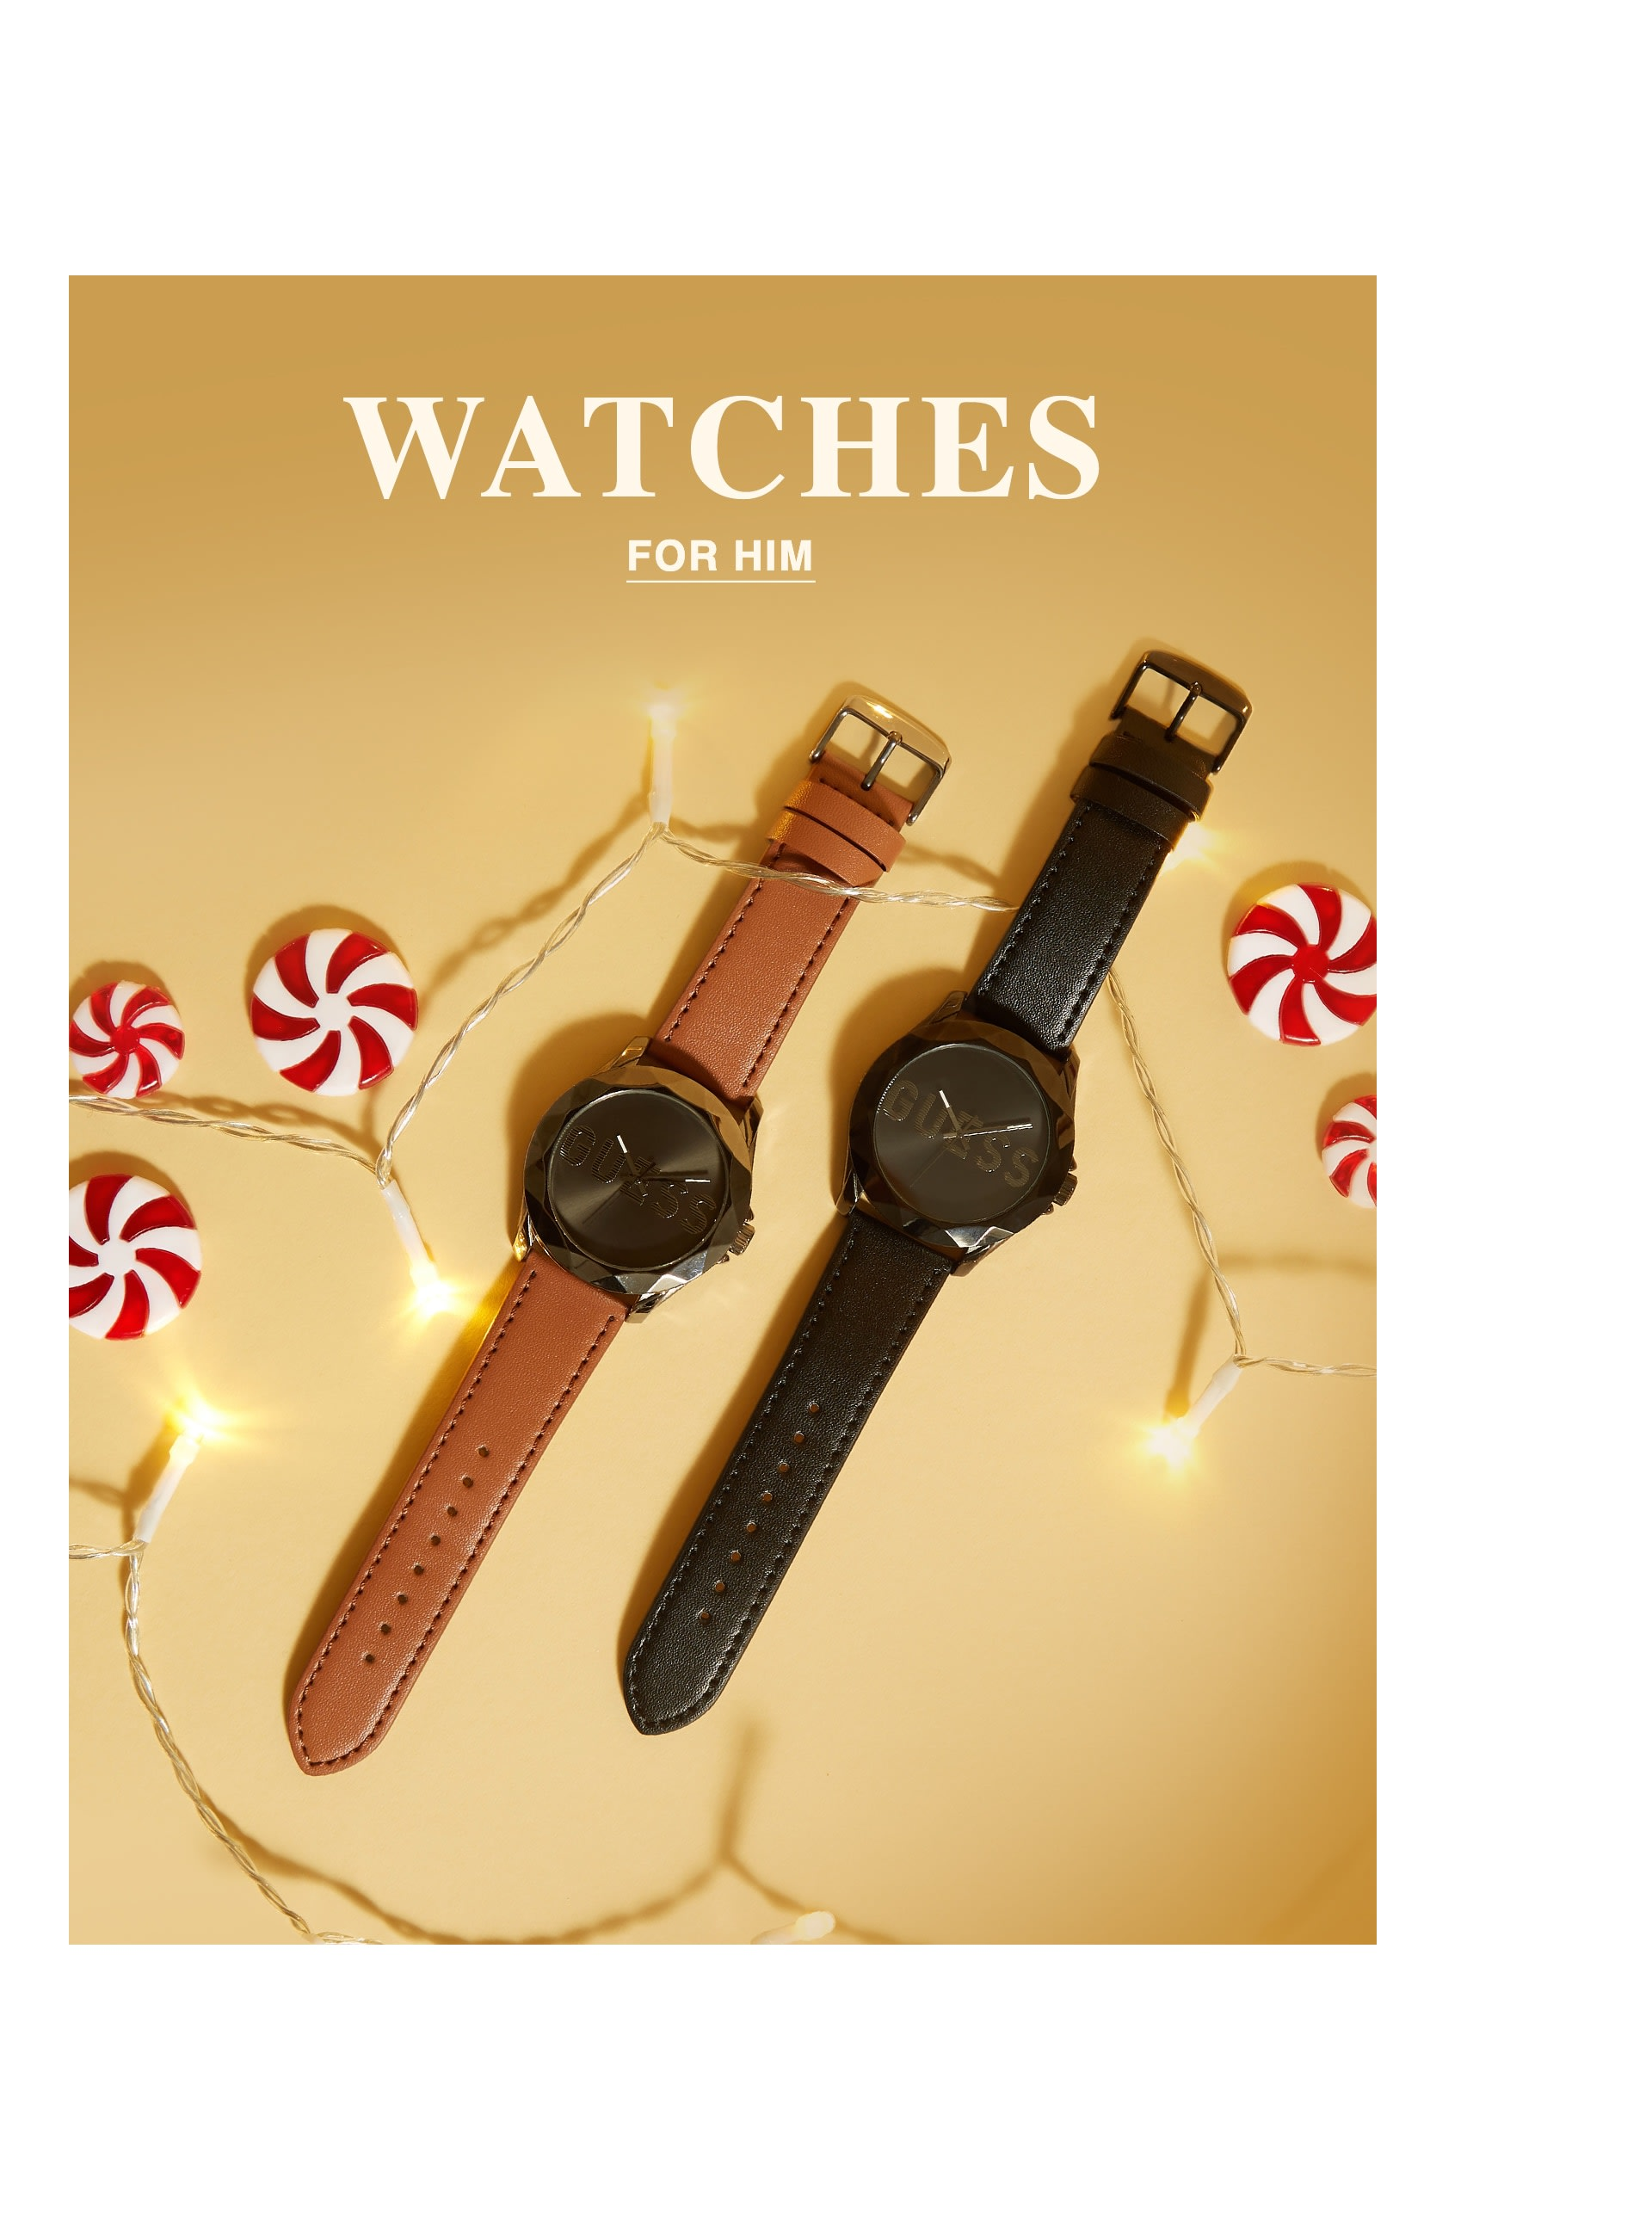 His Watches